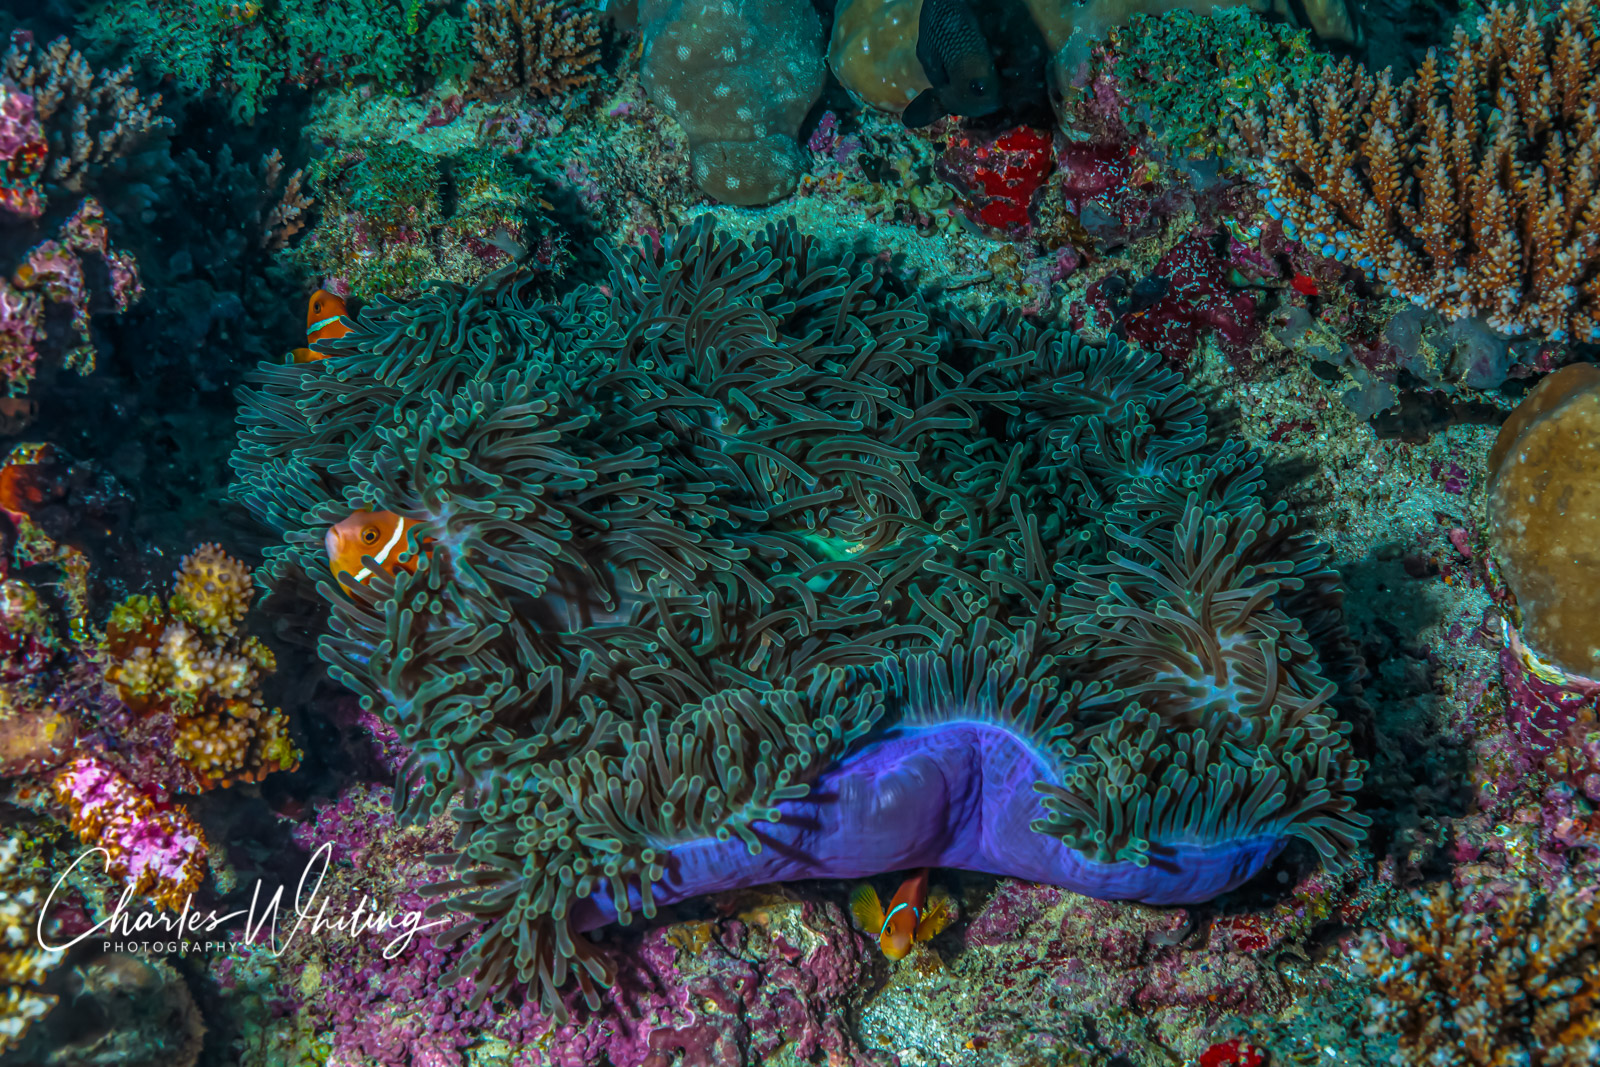 Maldives, Anemonefish, Purple Ring Anemone, photo